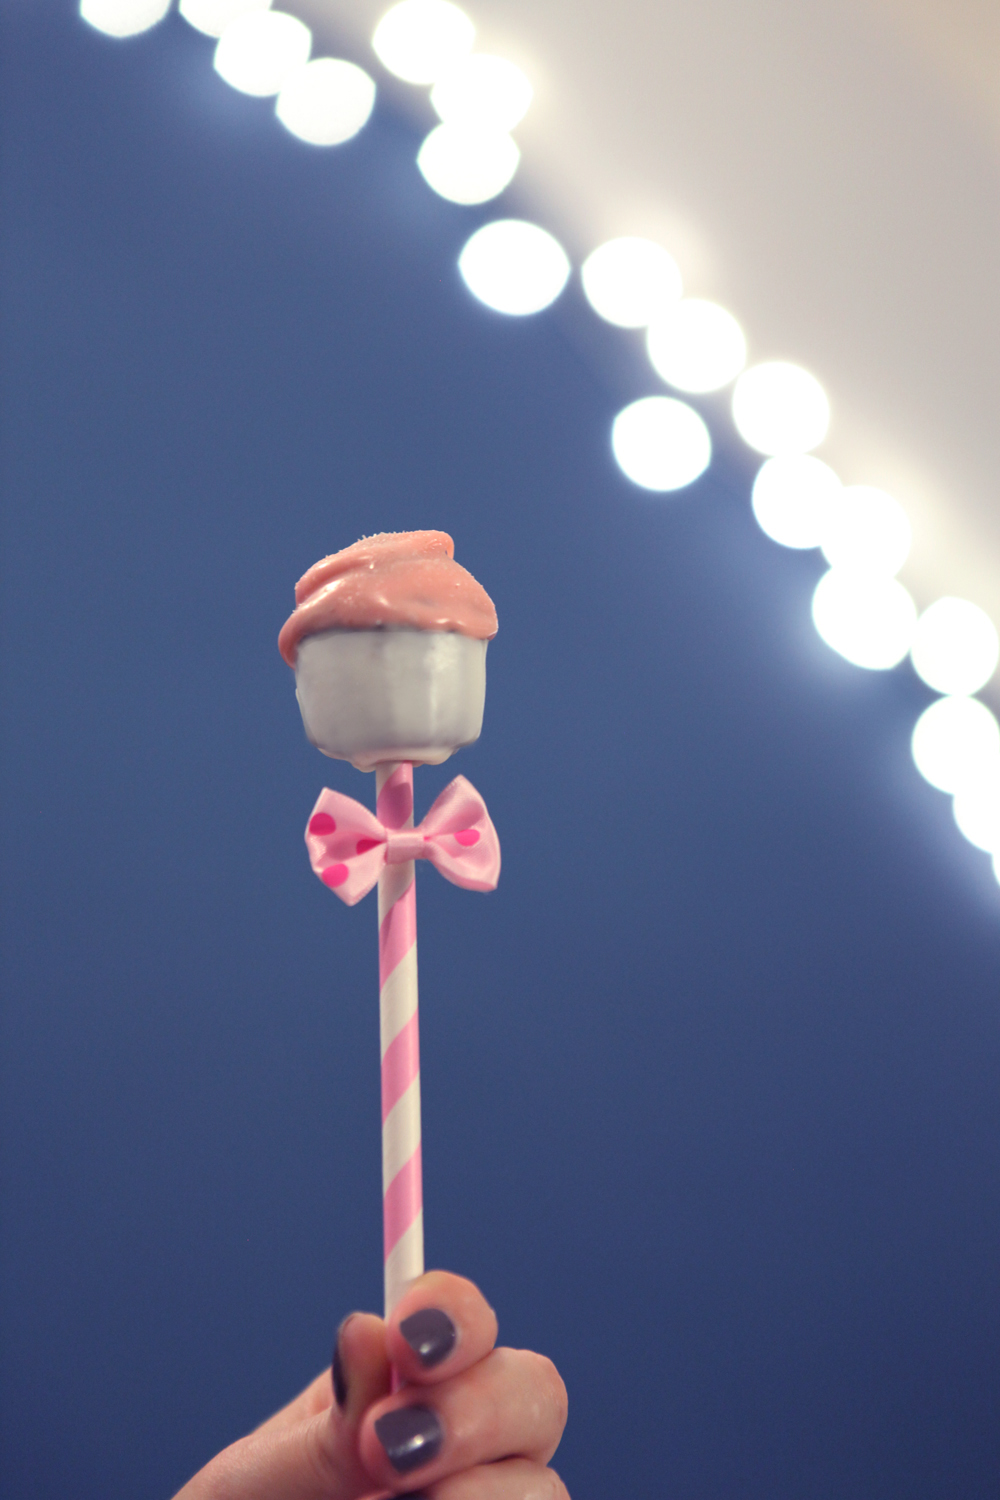 Don't mess with the rabbit - cupcakepop1